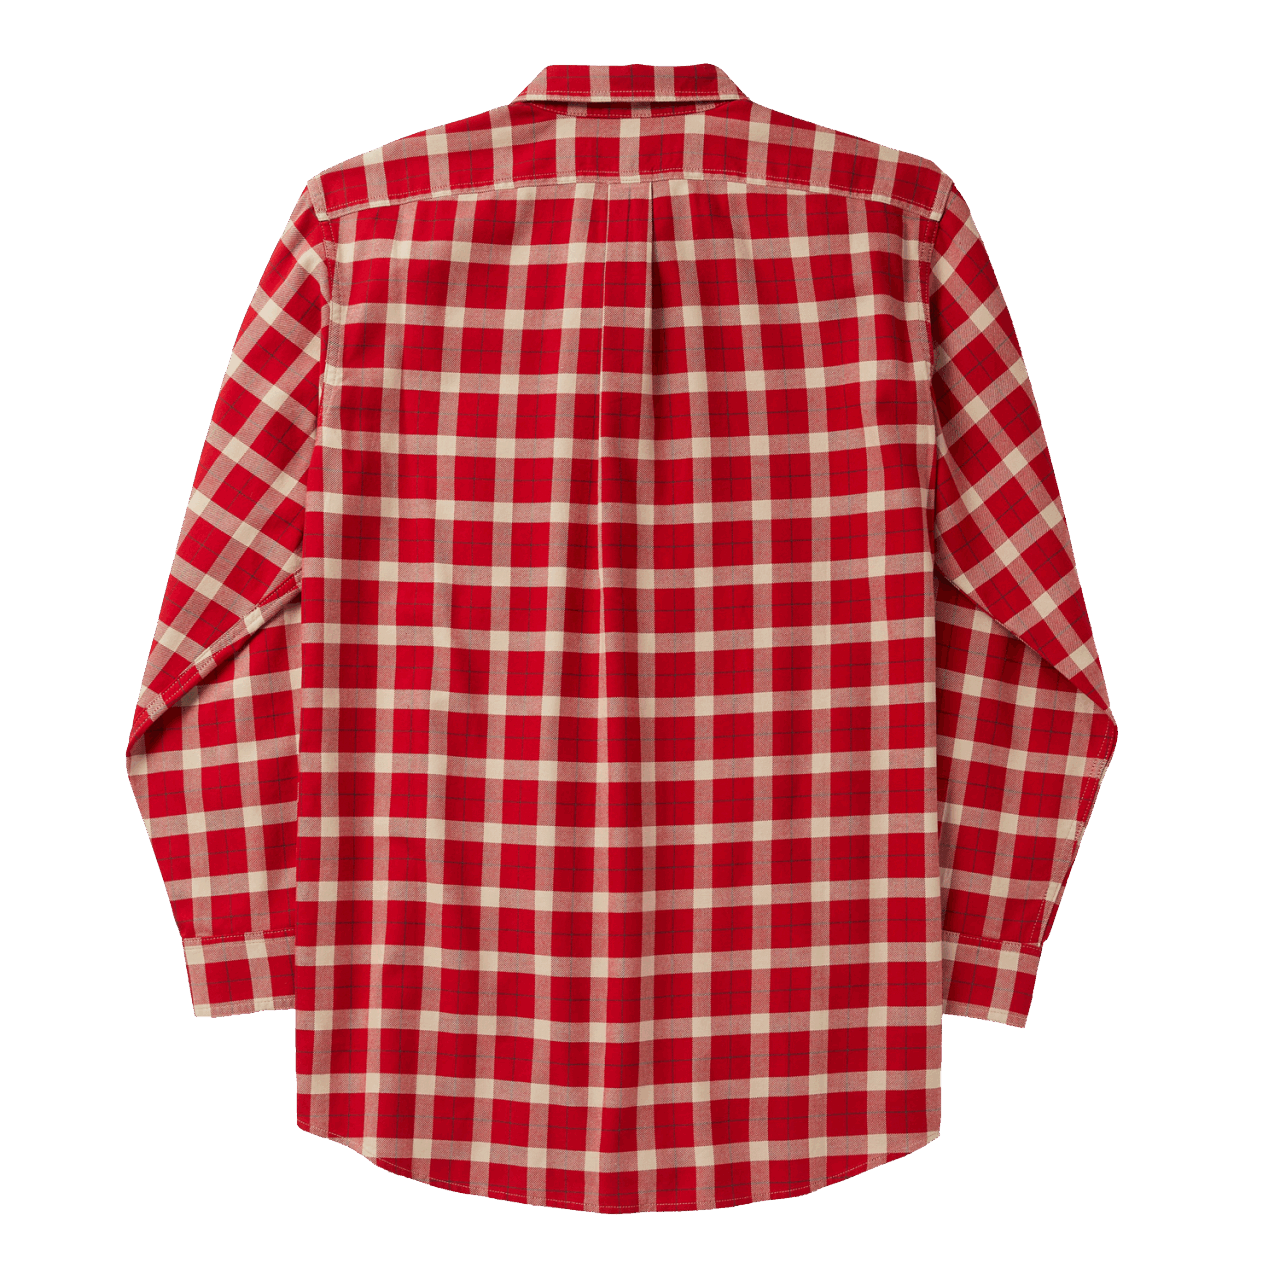 Filson LT Alaskan Guide Shirt red/cream